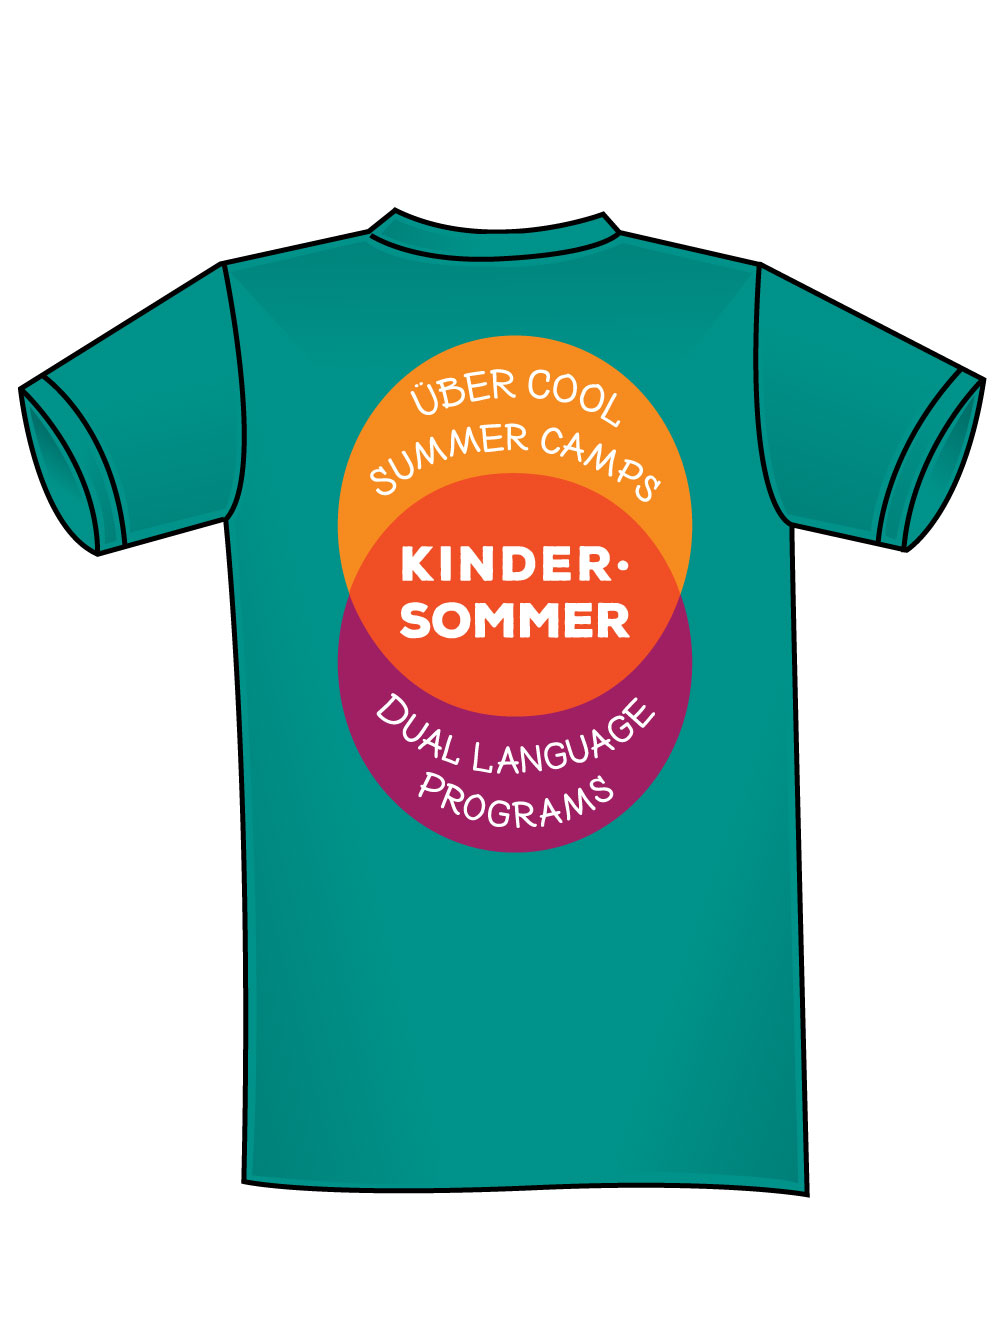 Kindersommer-T-Shirt_back.jpg